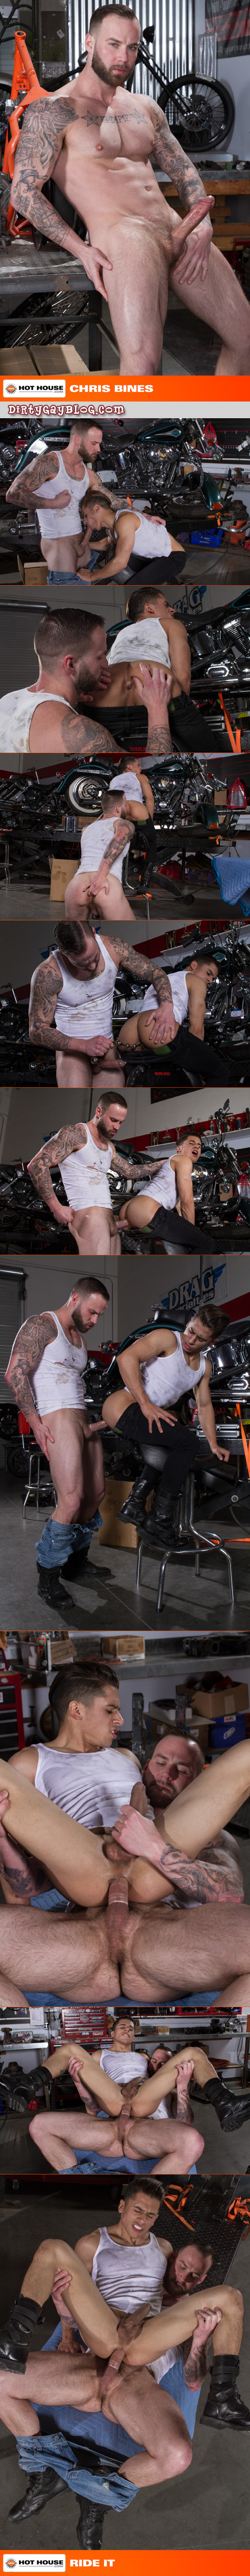 Hairy mechanic fucking a Latino muscle bottom with his big dick.